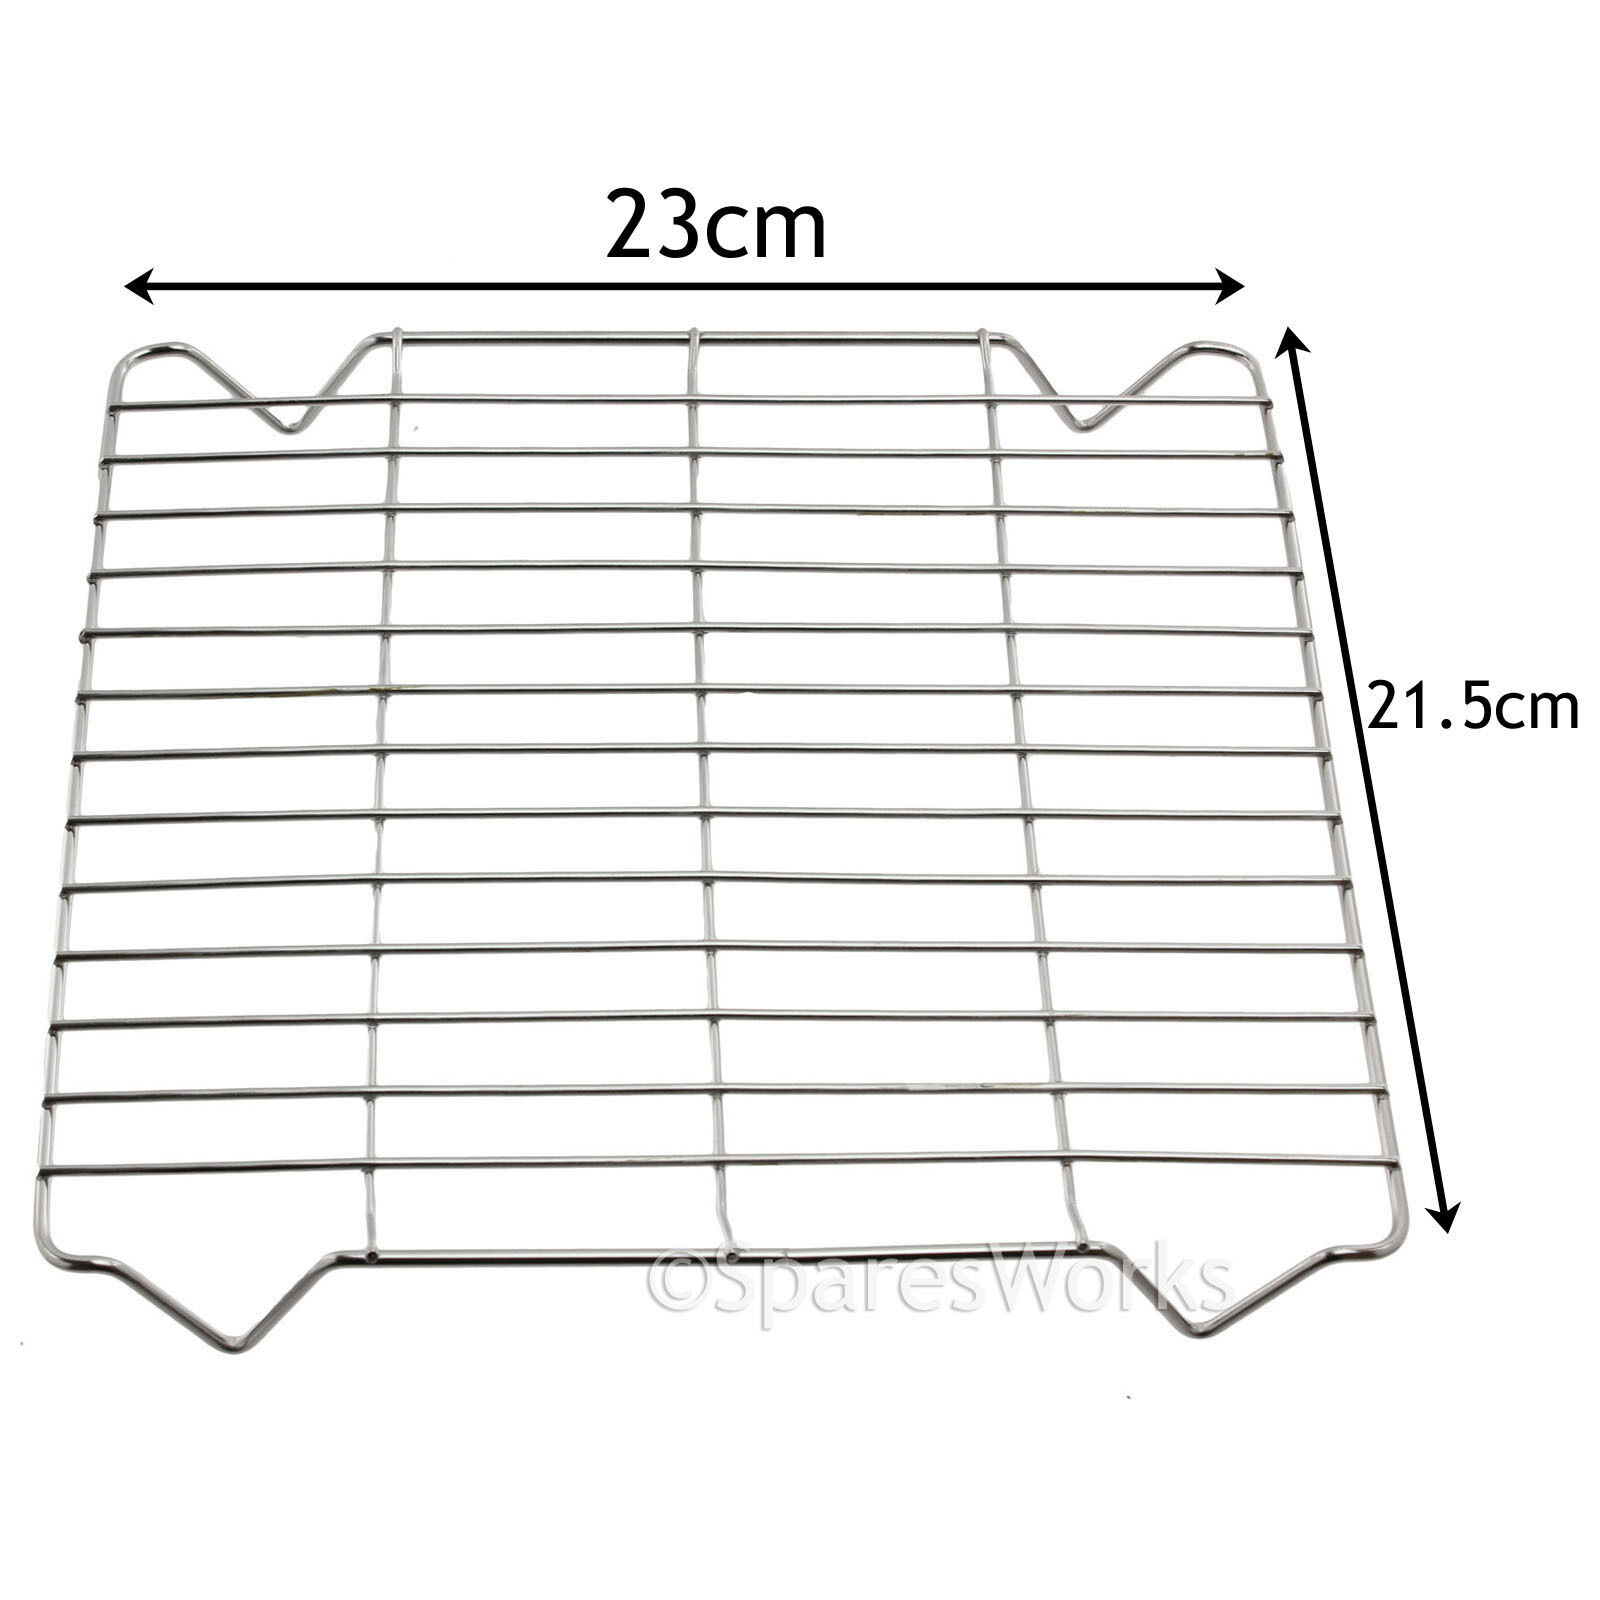 Square Stainless Steel Tray Rack For Britannia Oven Cooker Grill Pan